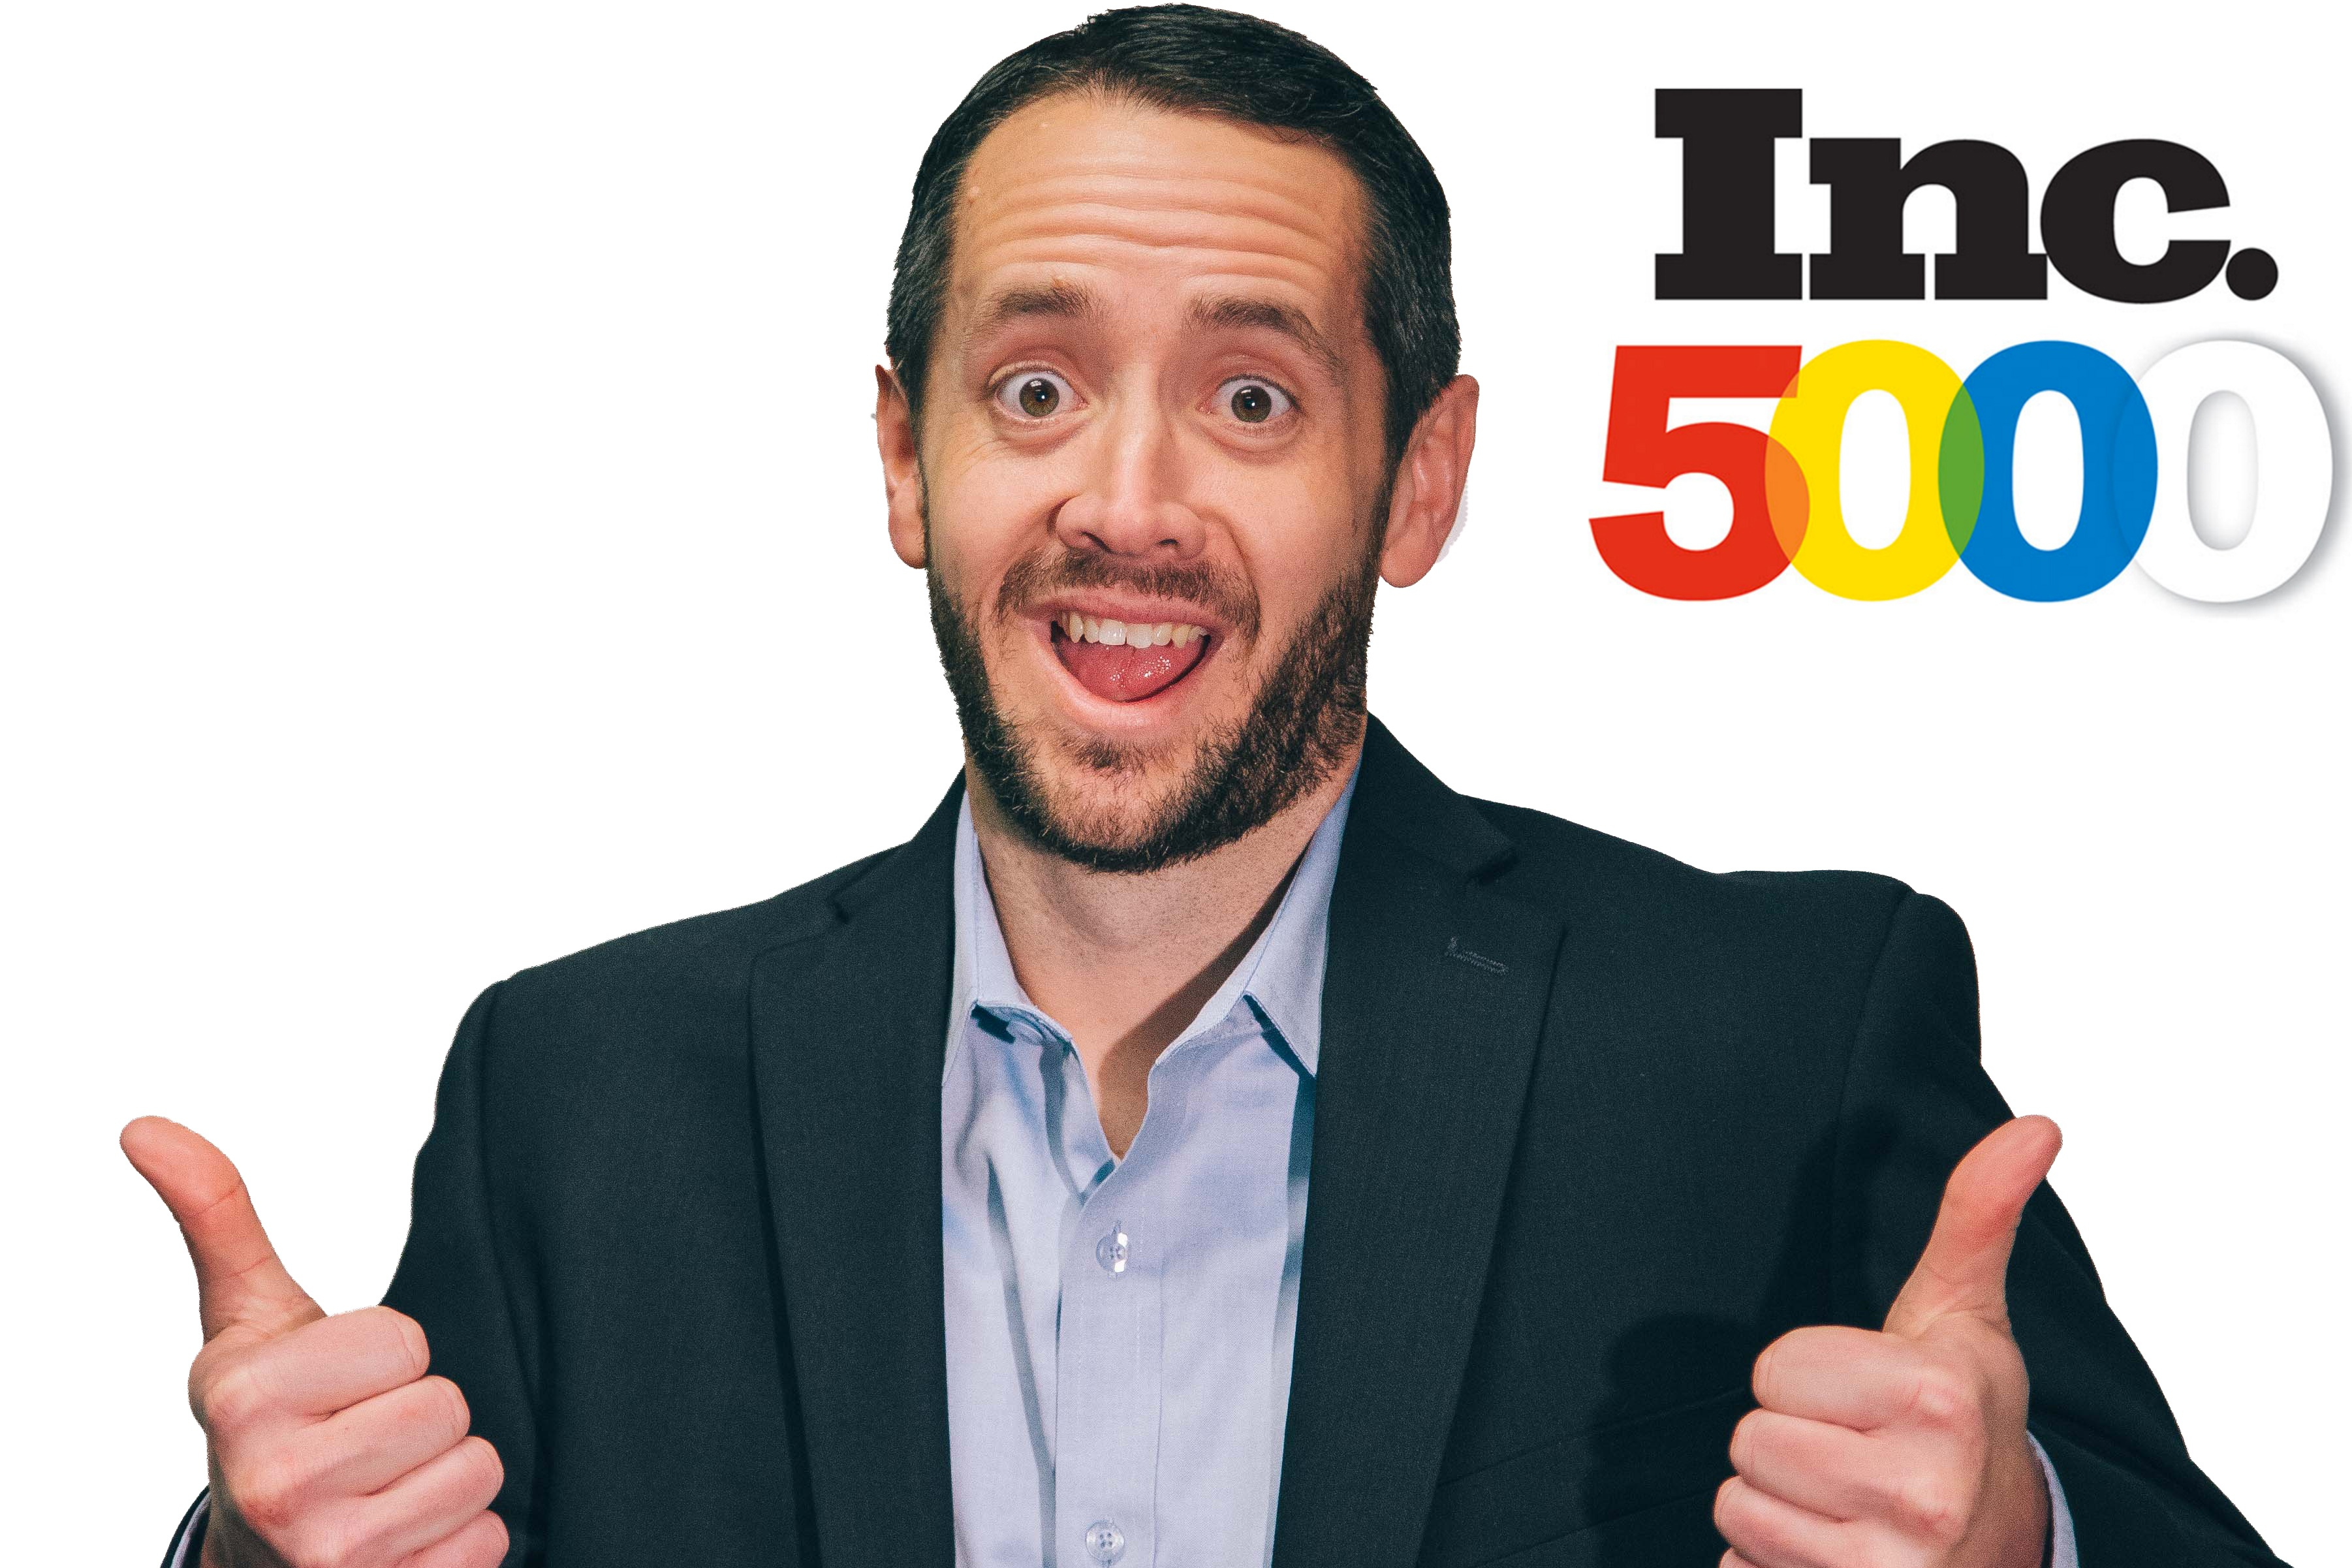 We Made It To Inc. 5000 List!